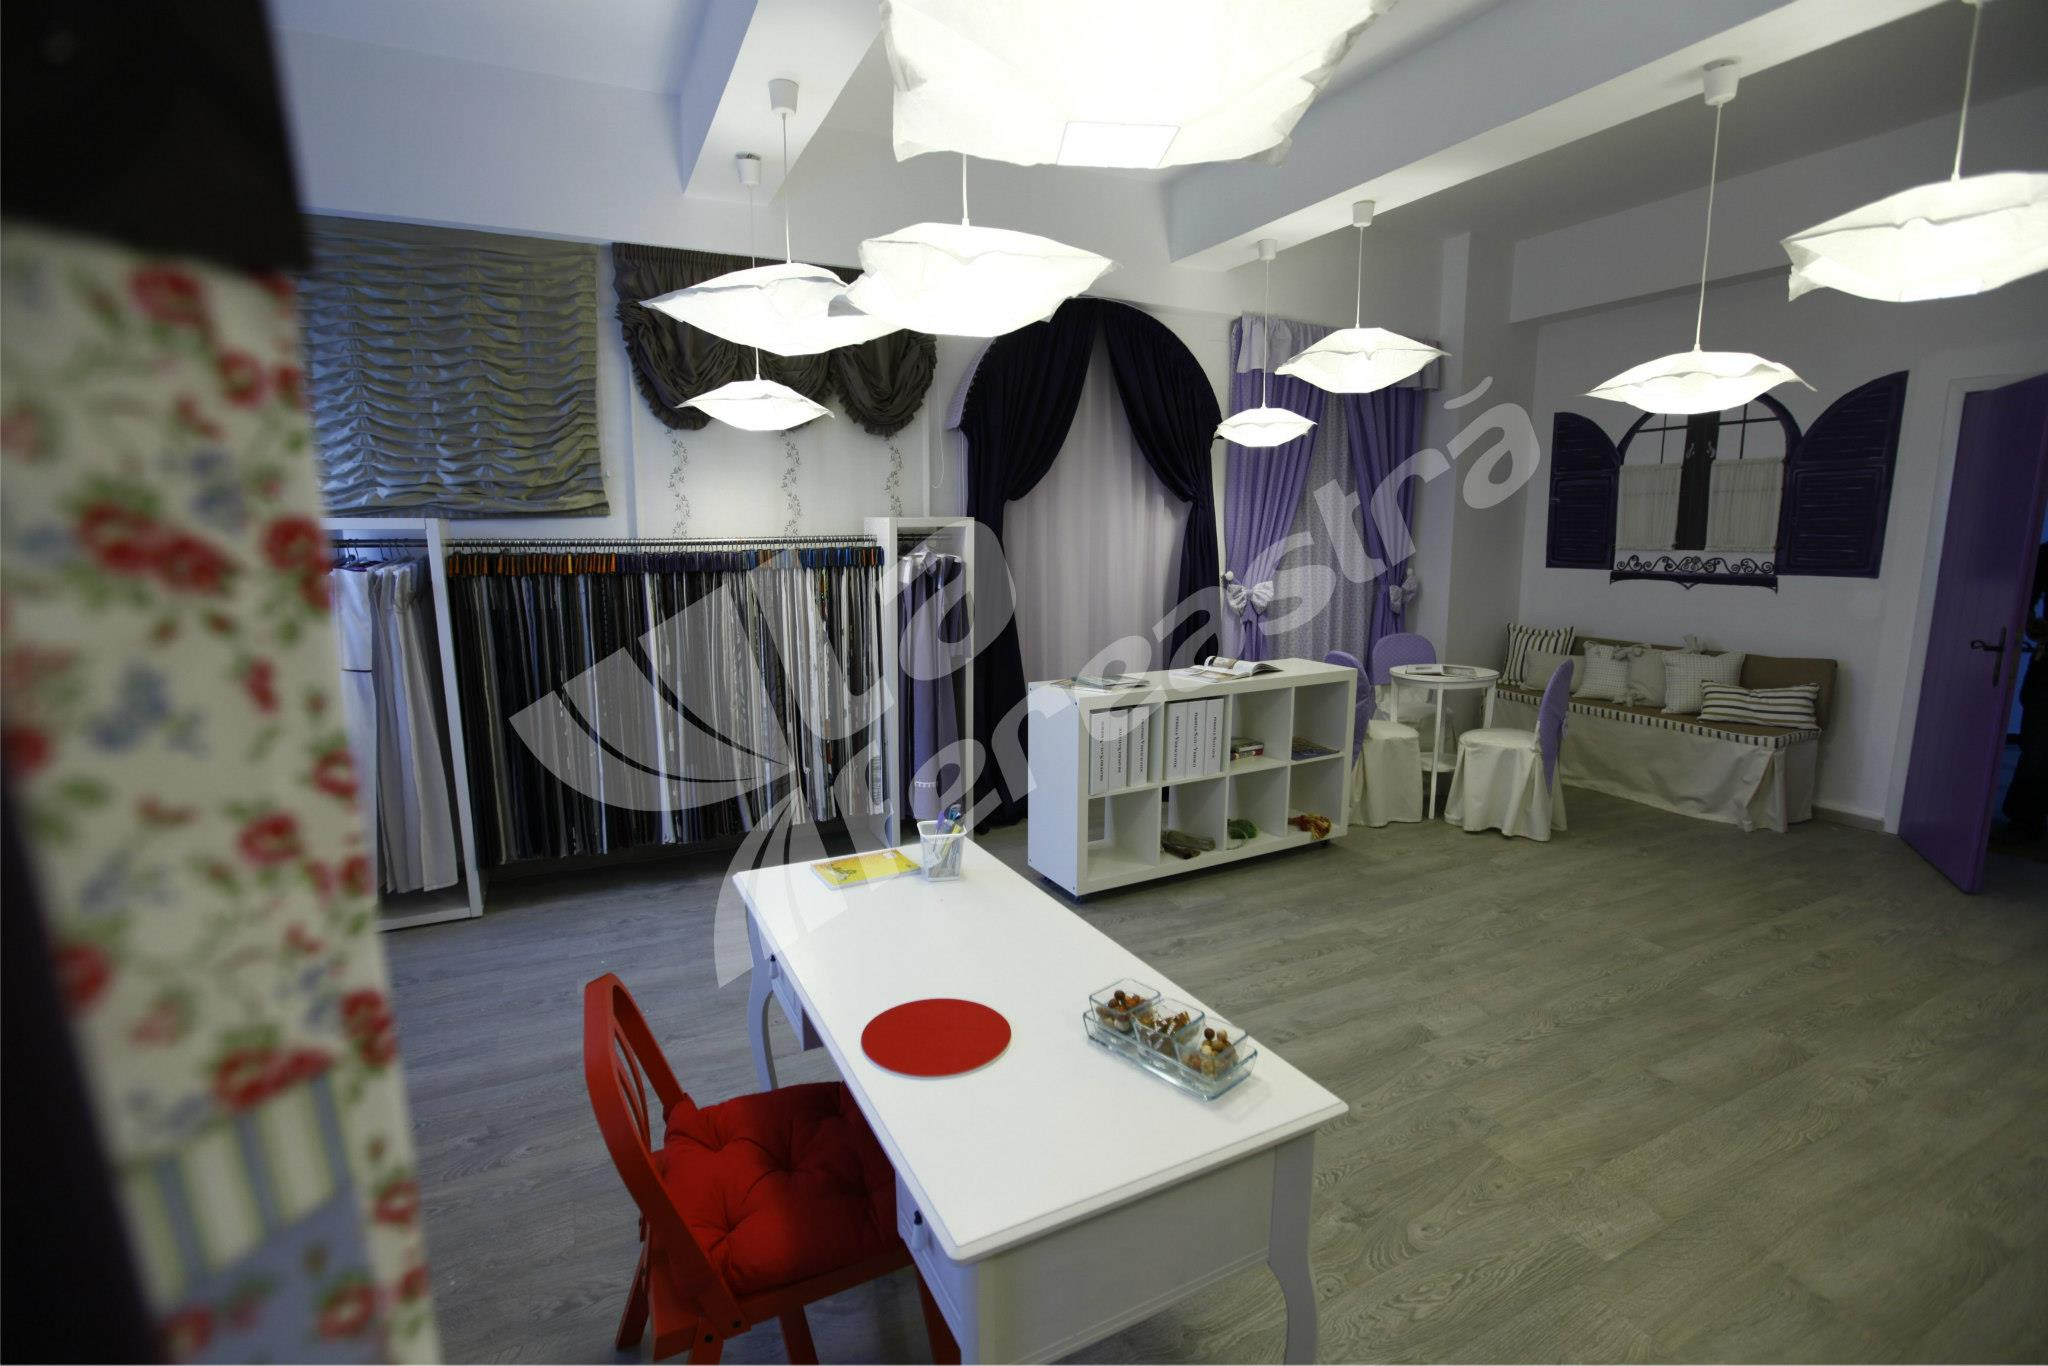 LA FEREASTRA - Showroom Bucuresti - LA FEREASTRA